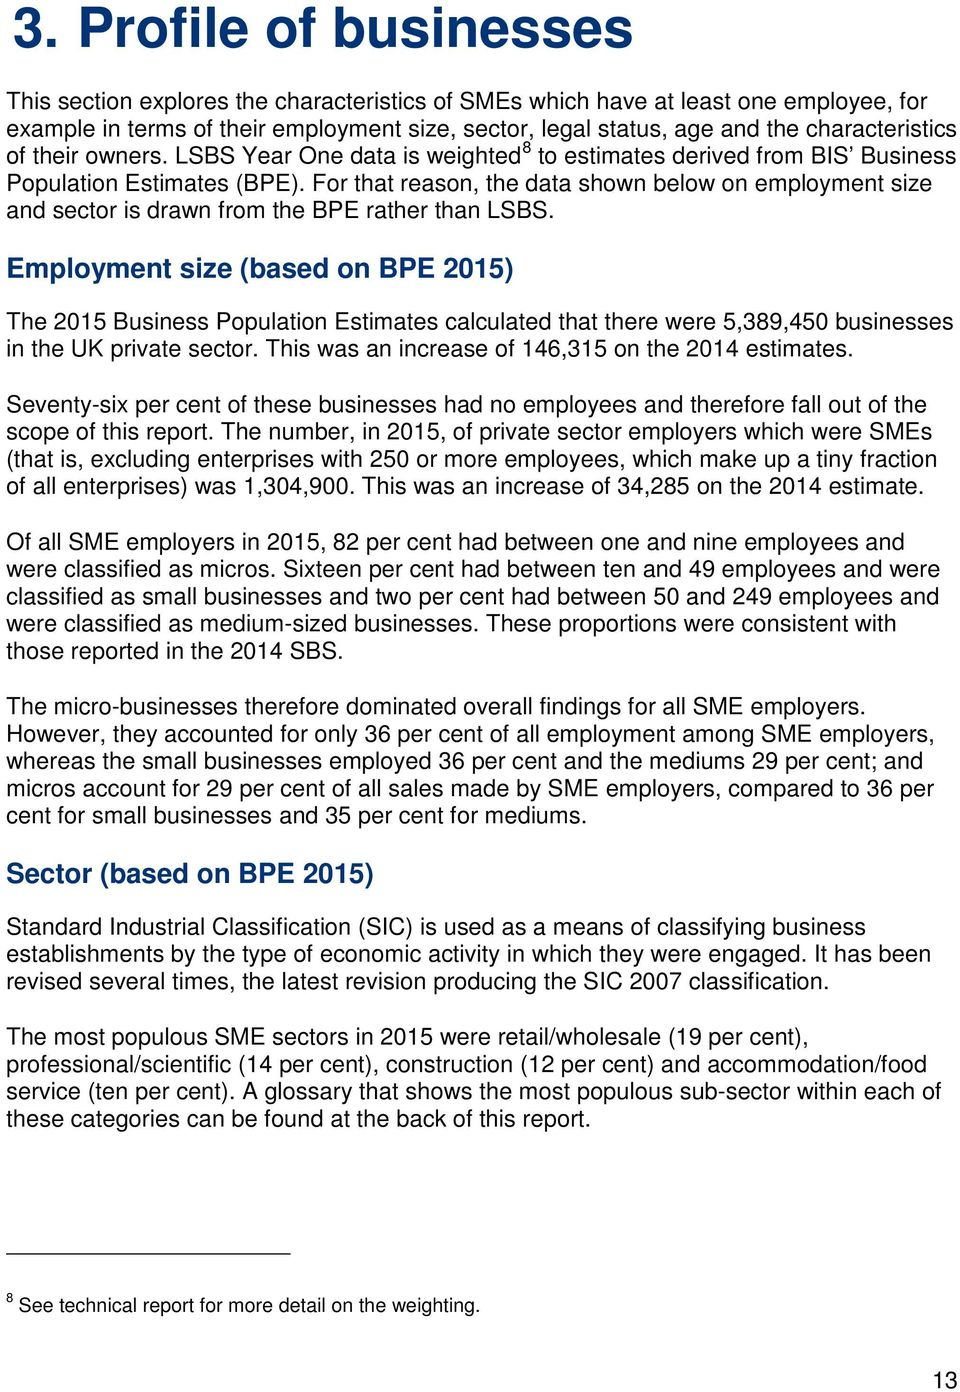 For that reason, the data shown below on employment size and sector is drawn from the BPE rather than LSBS.